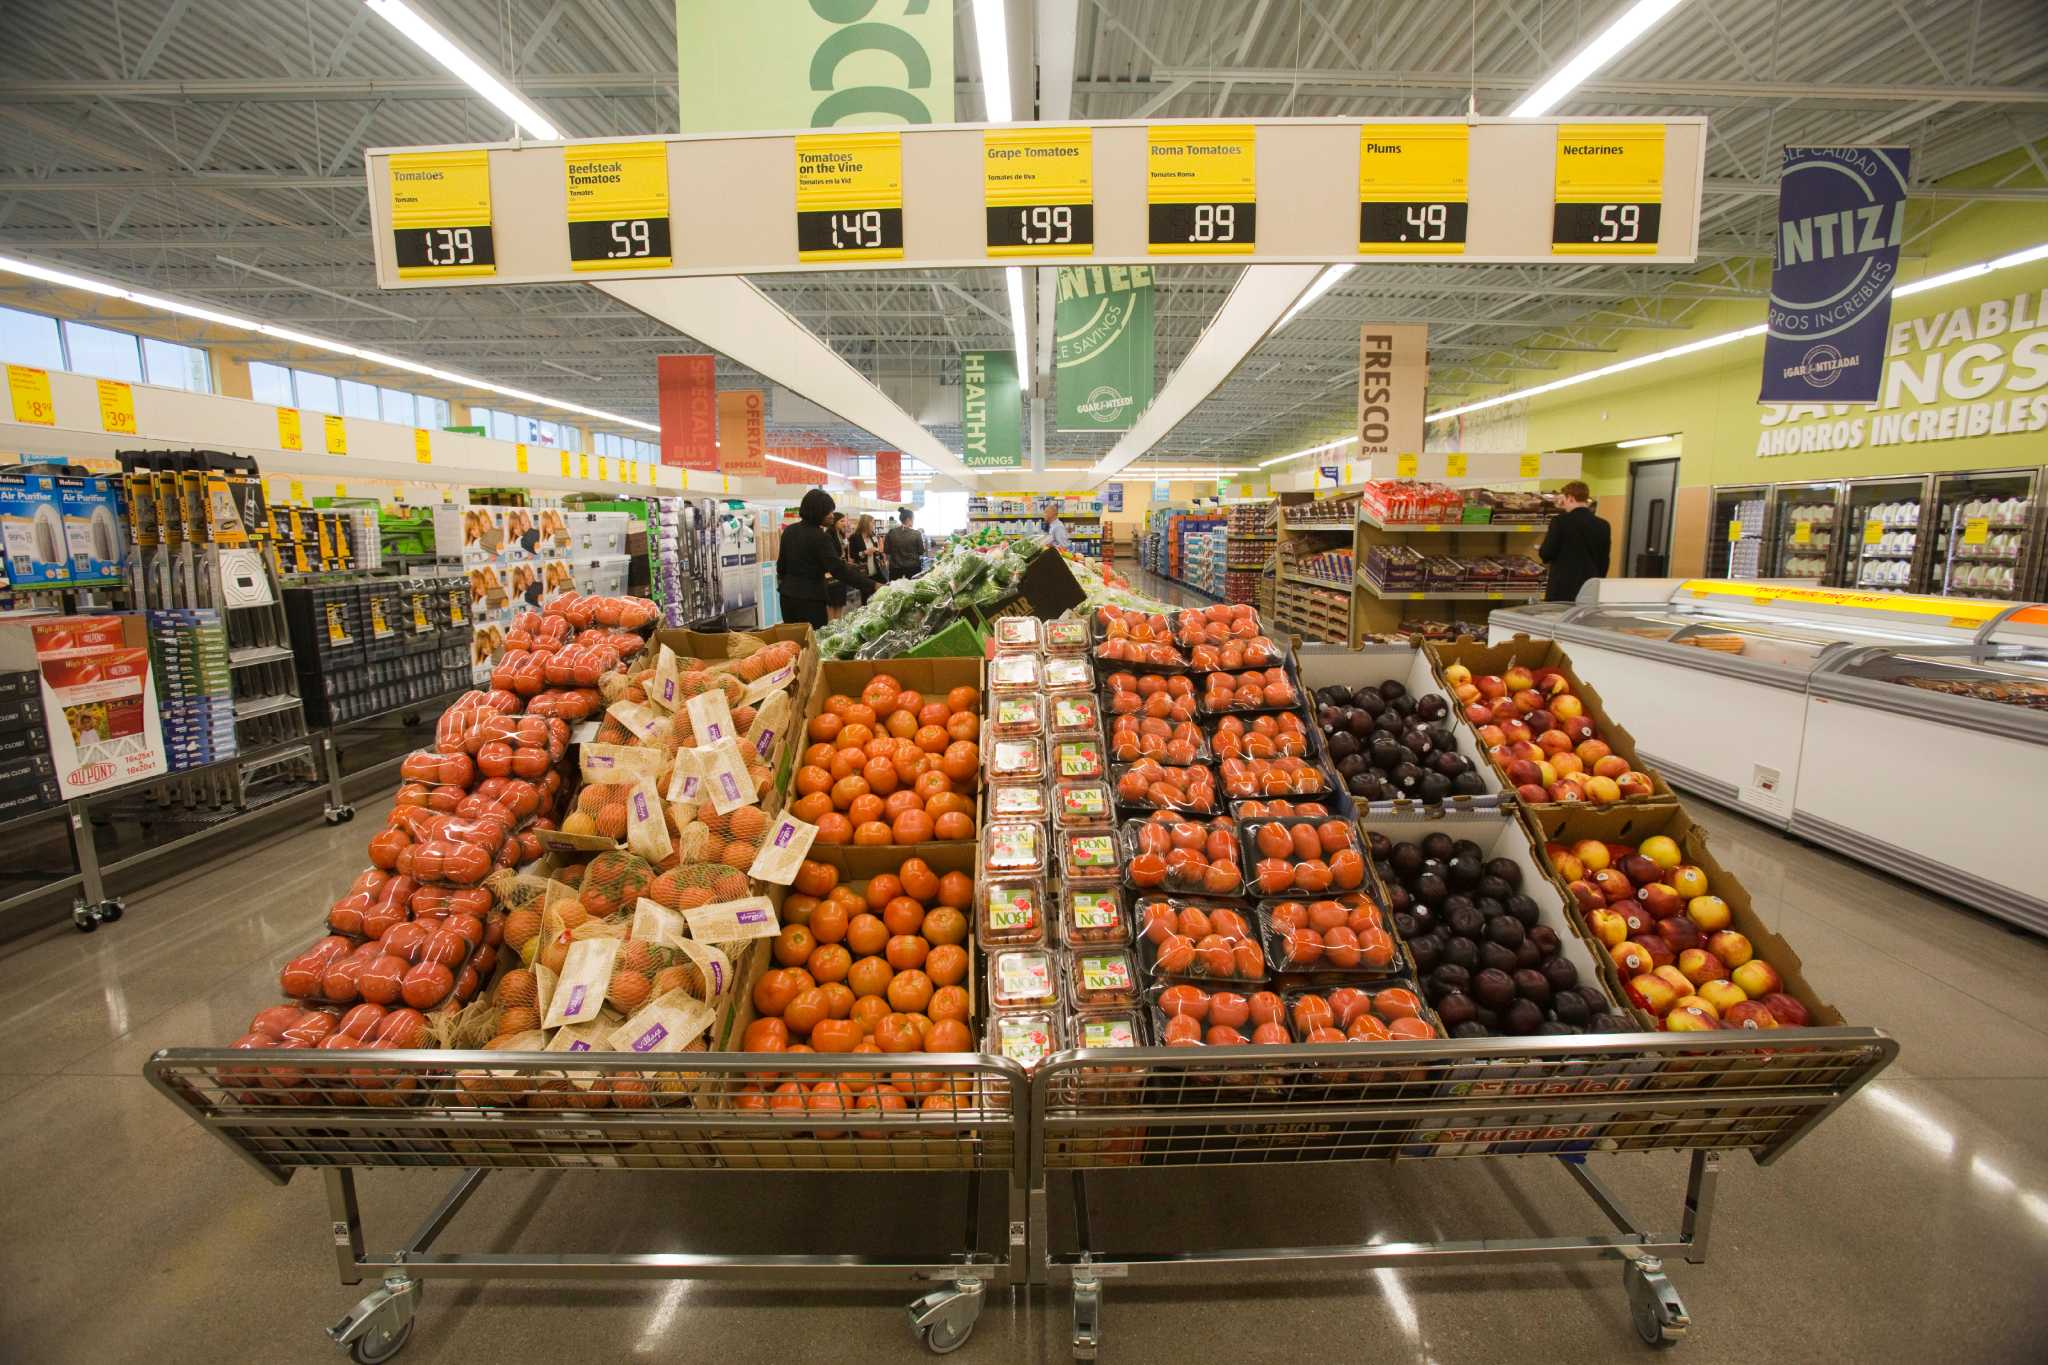 superior supermarket case anaylsis Superior supermarket faces the following threats : loss in market share if pricing strategy is not changed, loss in current customers, lower prices at competitor stores, and an increase in price awareness among customer base.